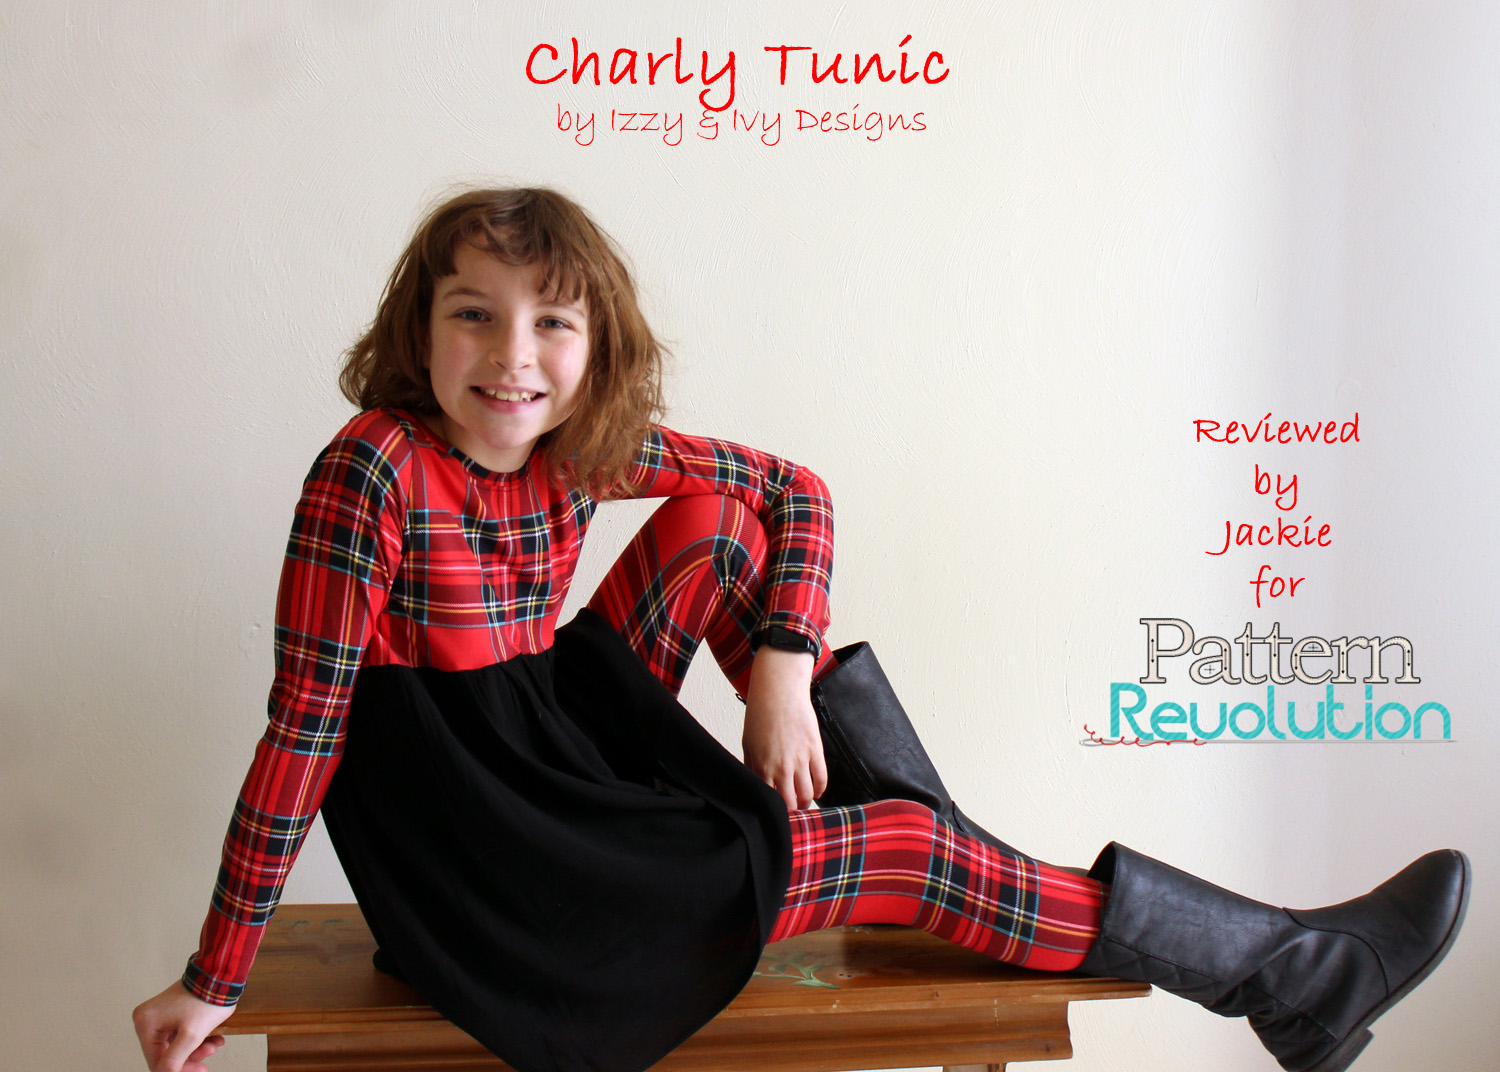 Jackie's Charly Tunic from Izzy&Ivy Designs